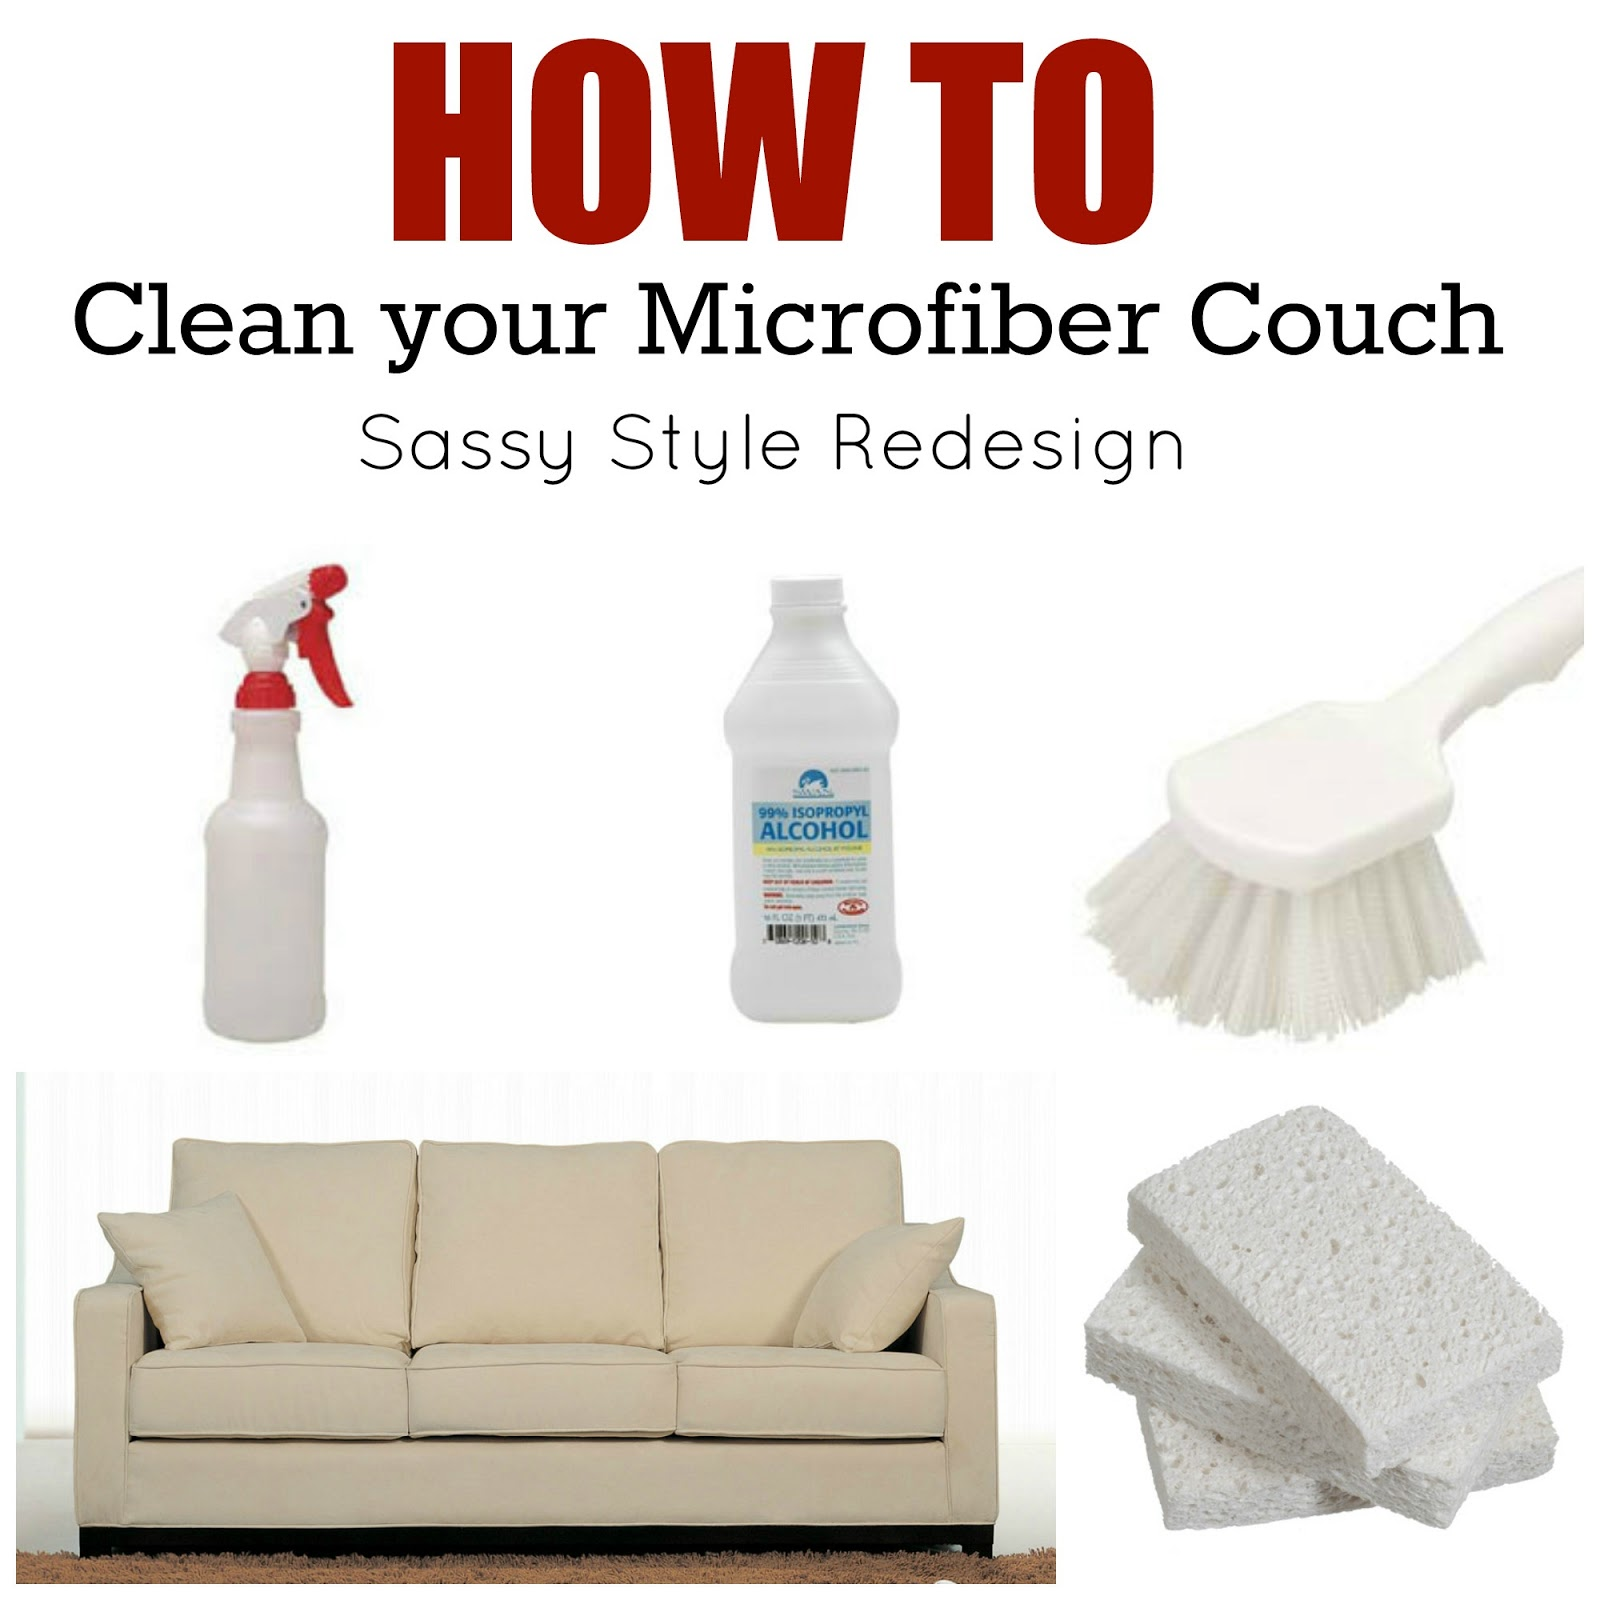 Microfiber Sofa Cleaning Products Burgundy Living Room How To Clean Sofas Brokeasshome